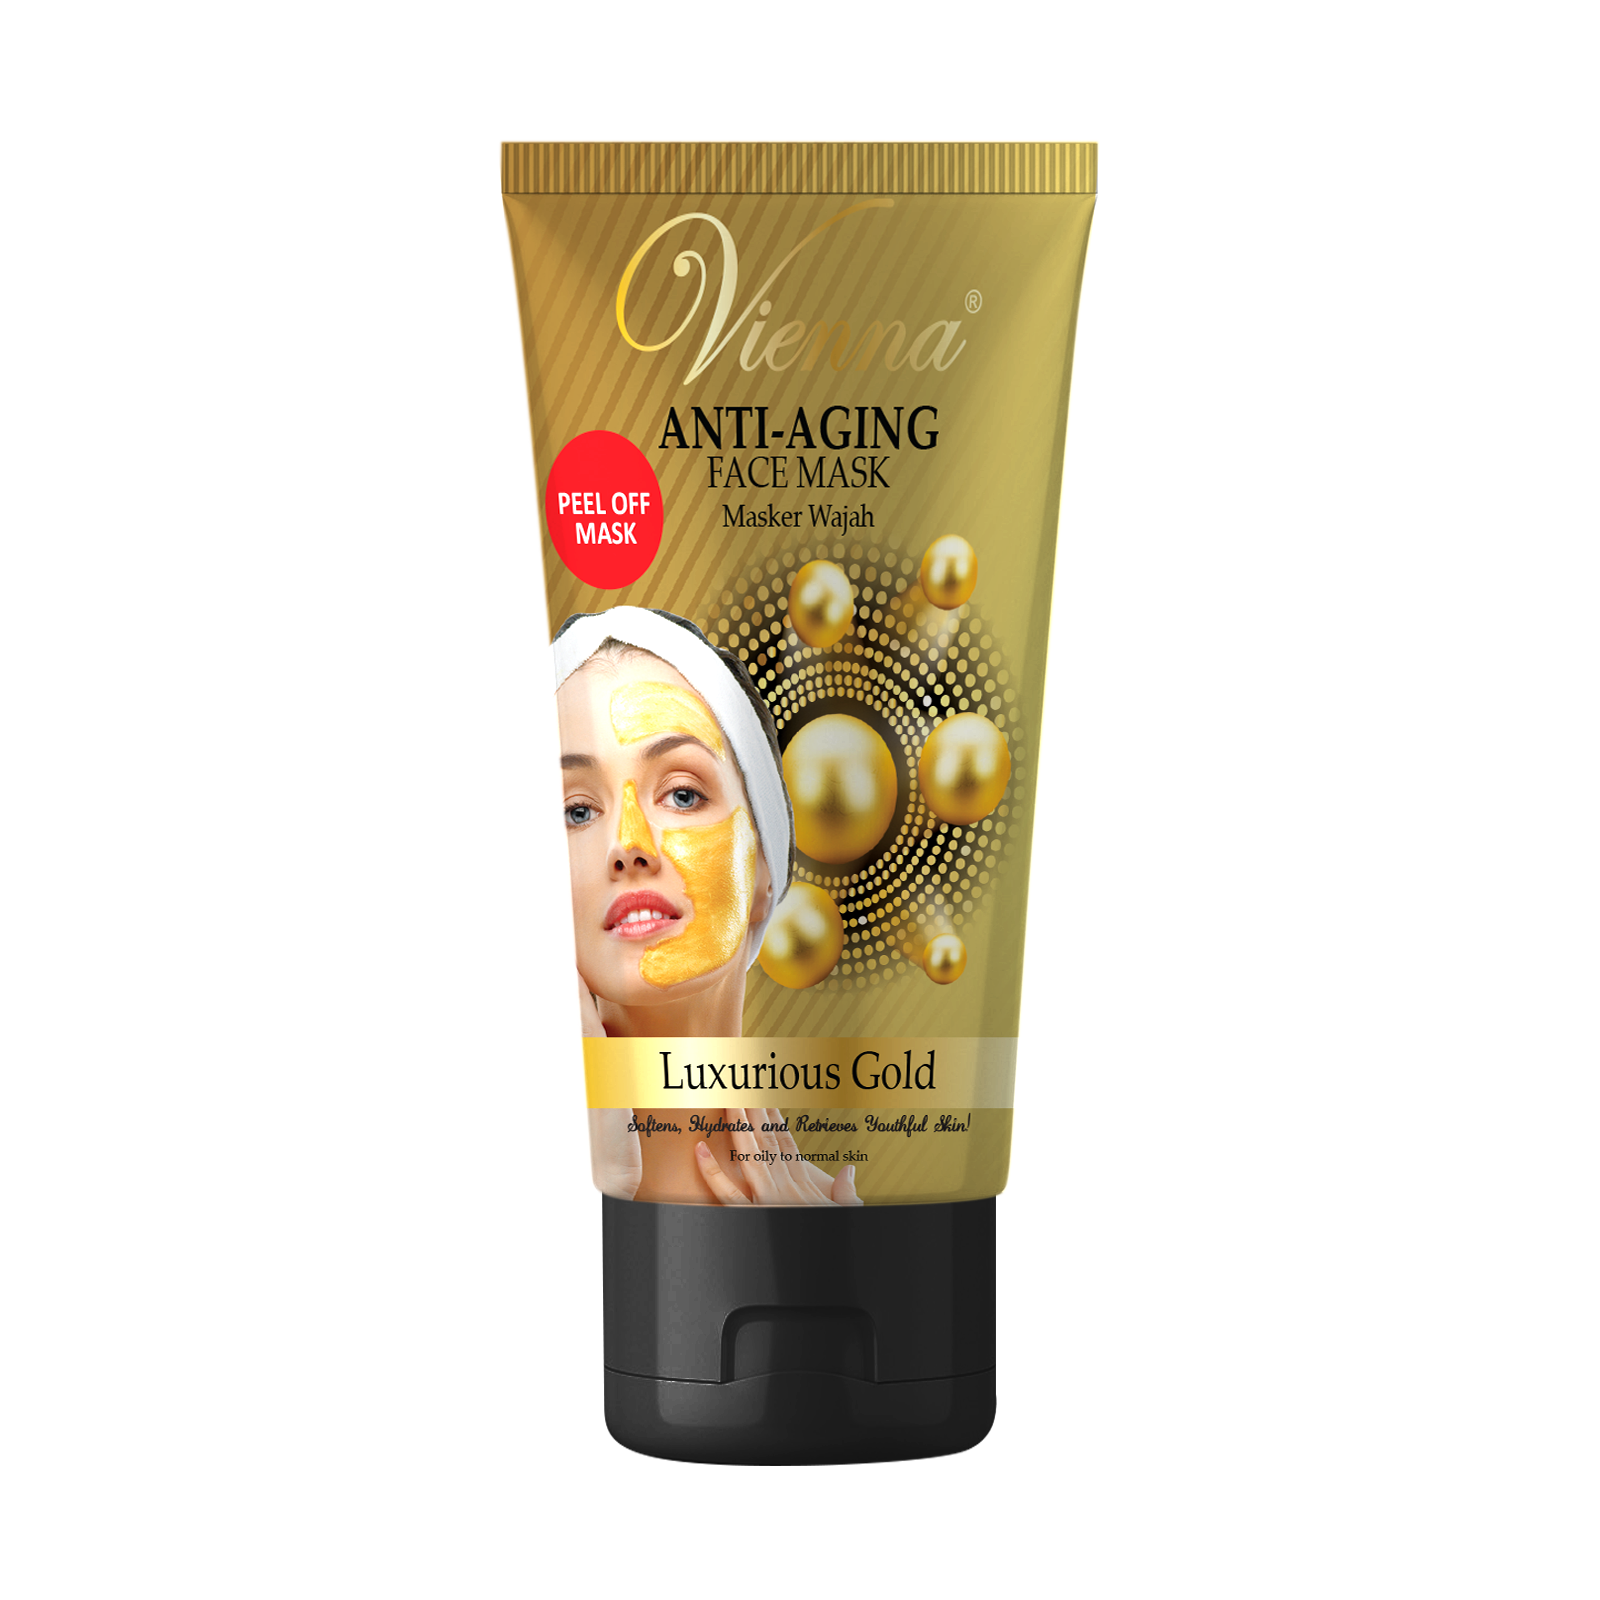 Vienna Anti Aging Face Mask Luxurious Gold 50g